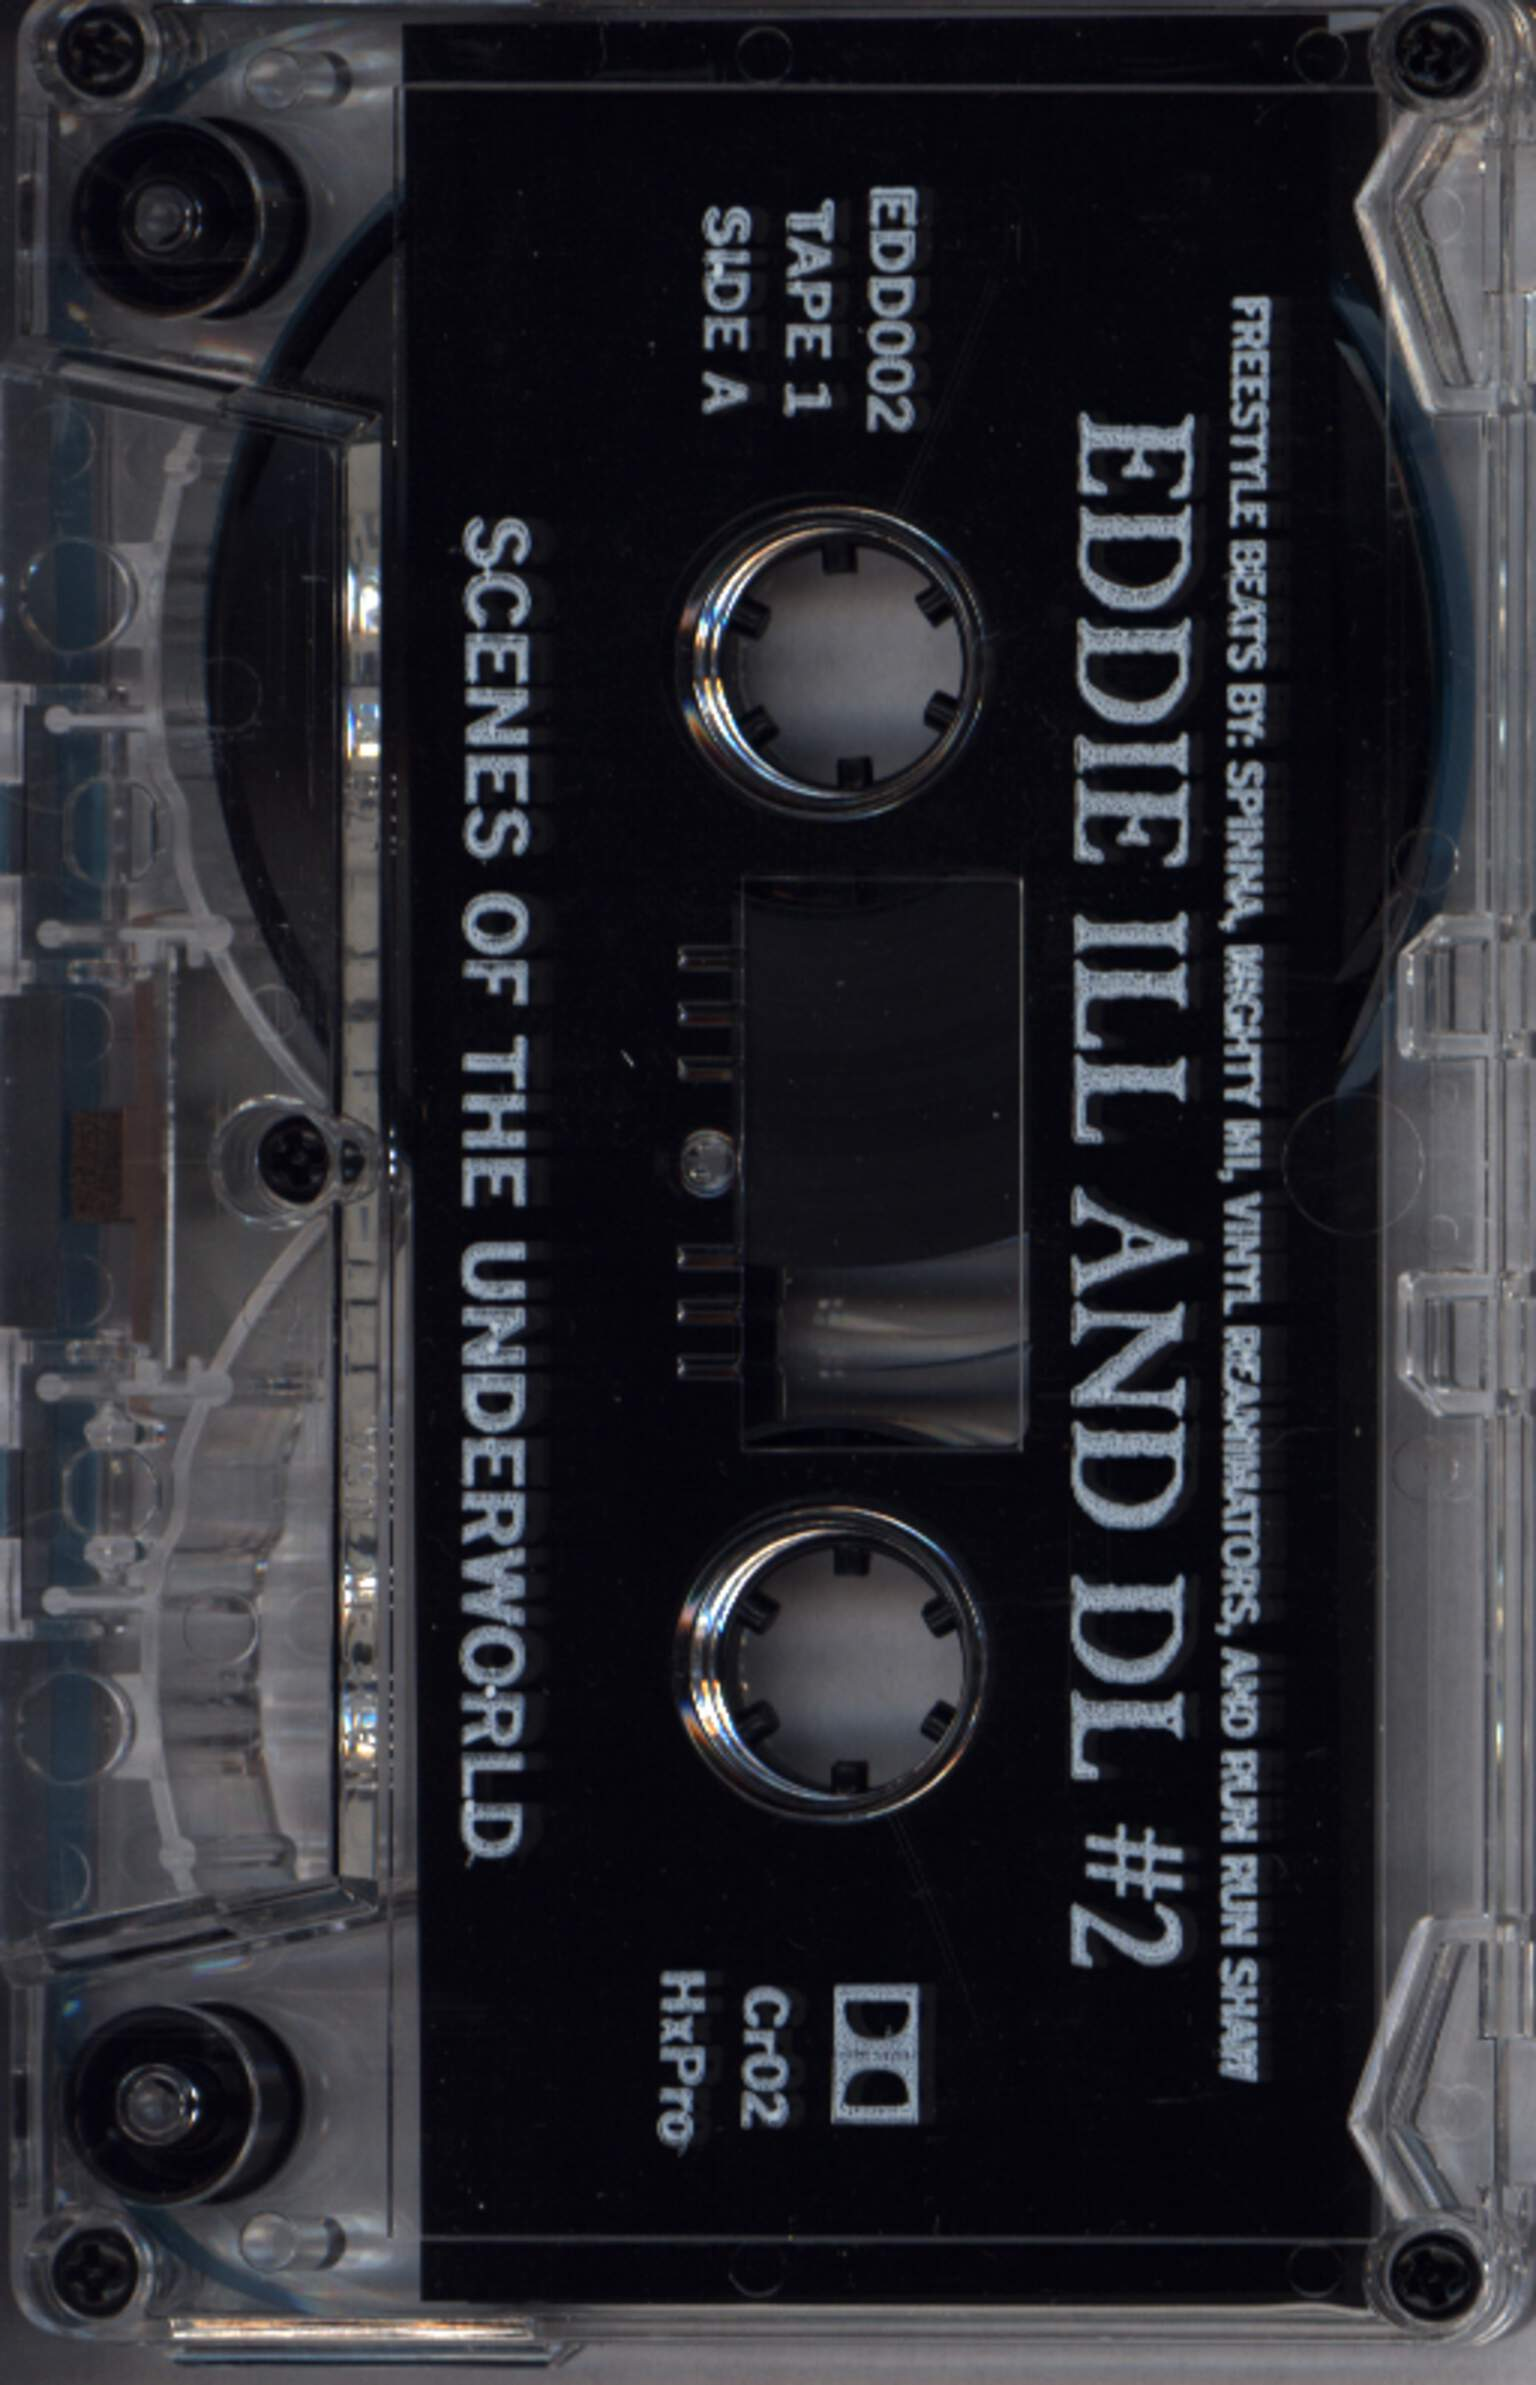 Eddie Ill And D.L.: Scenes Of The Underworld, Compact Cassette